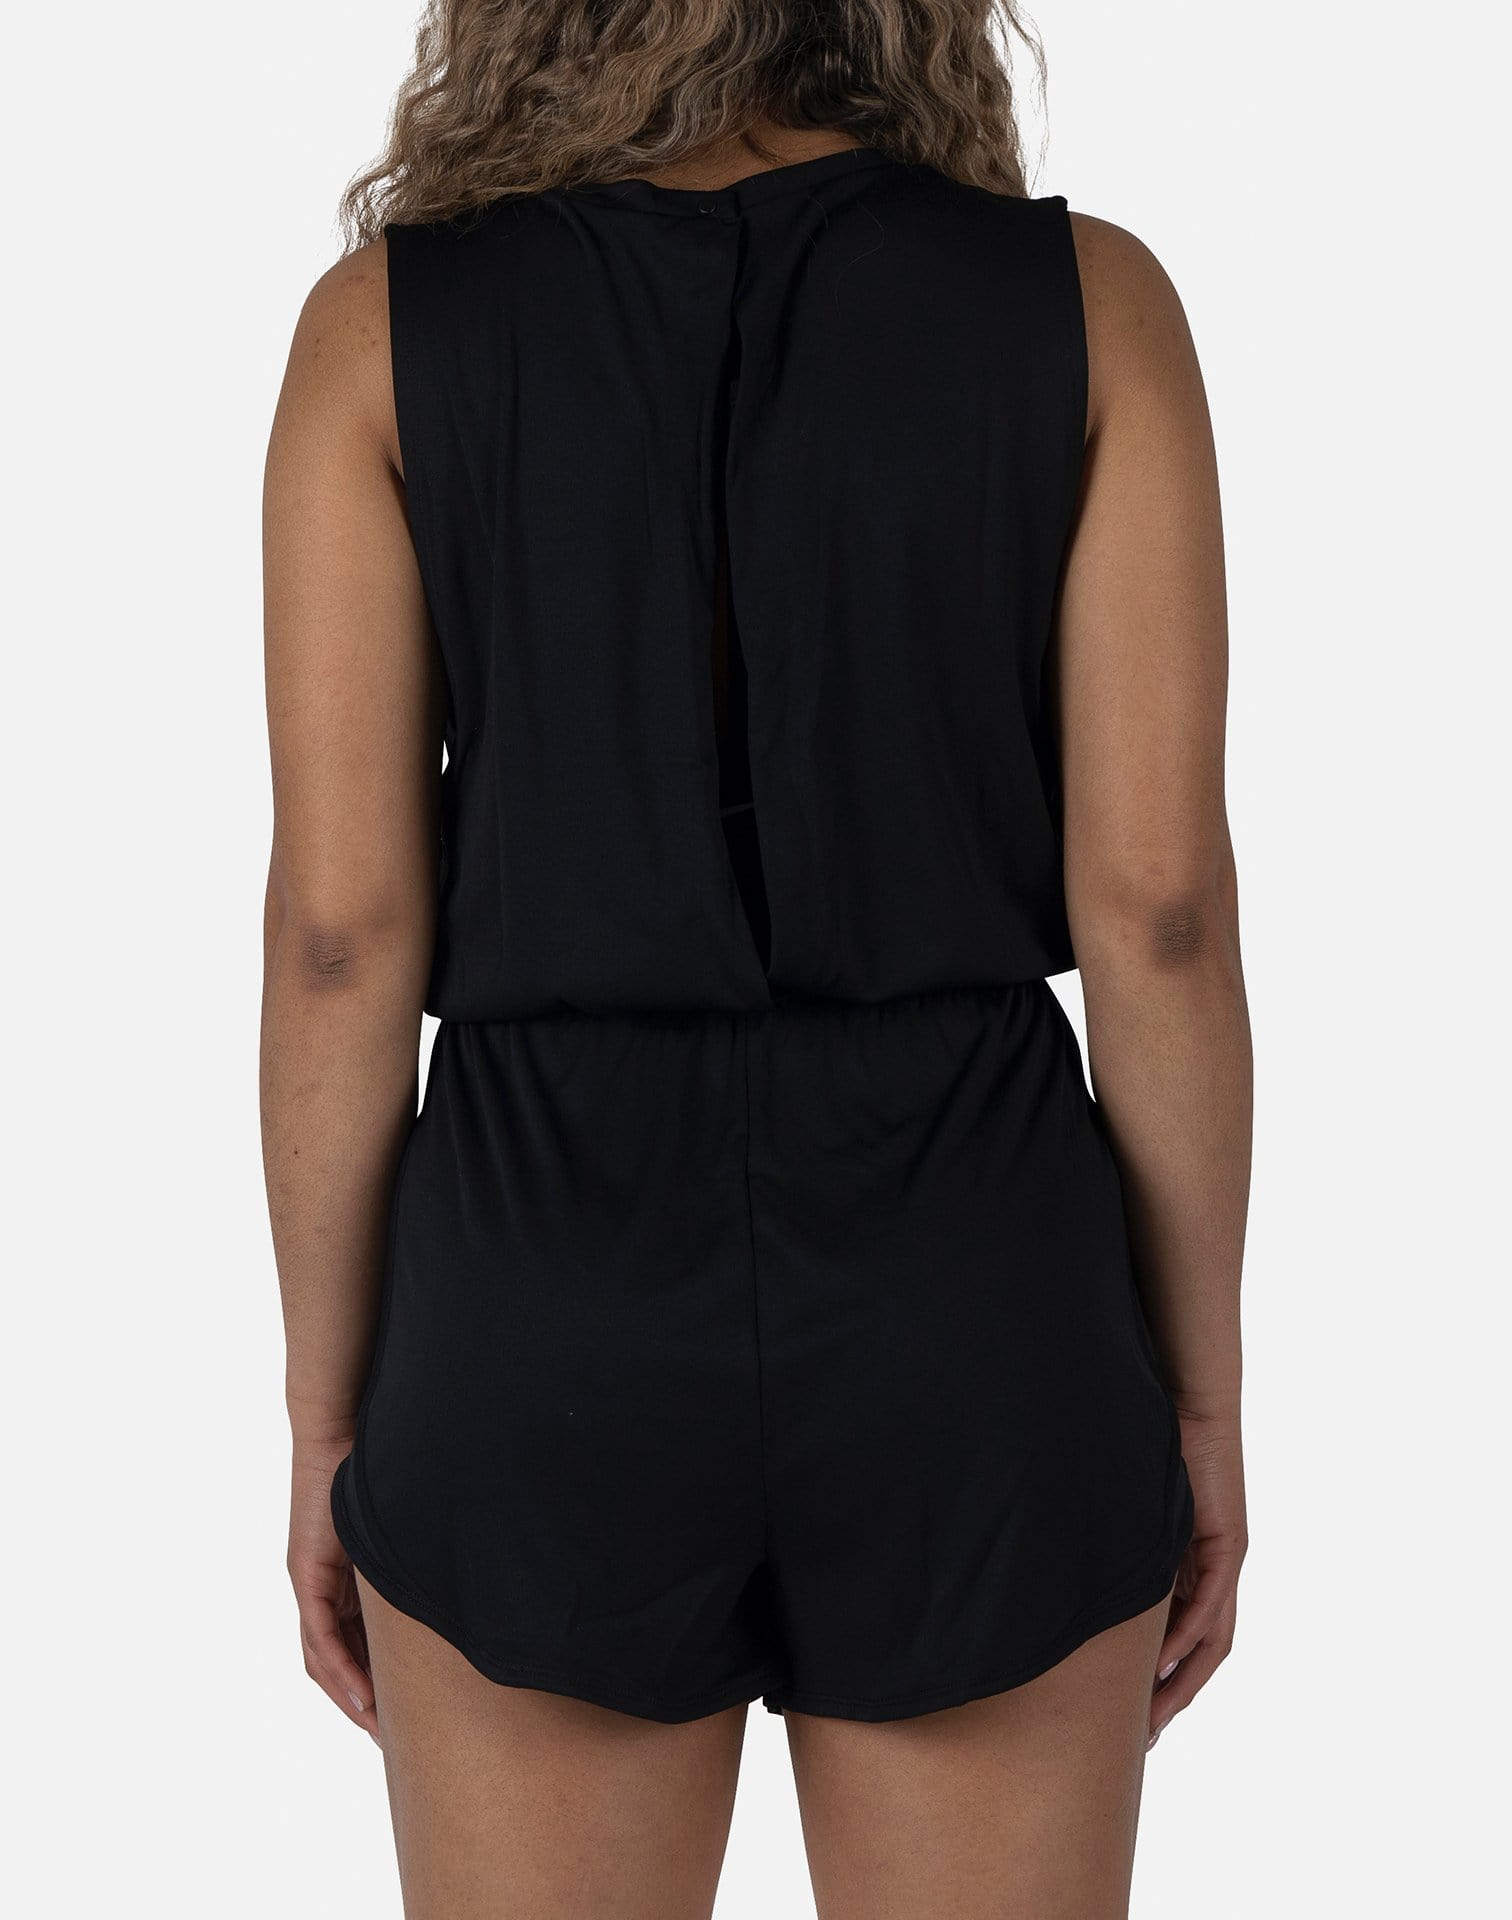 Nike Women's Dri-FIT Running Romper